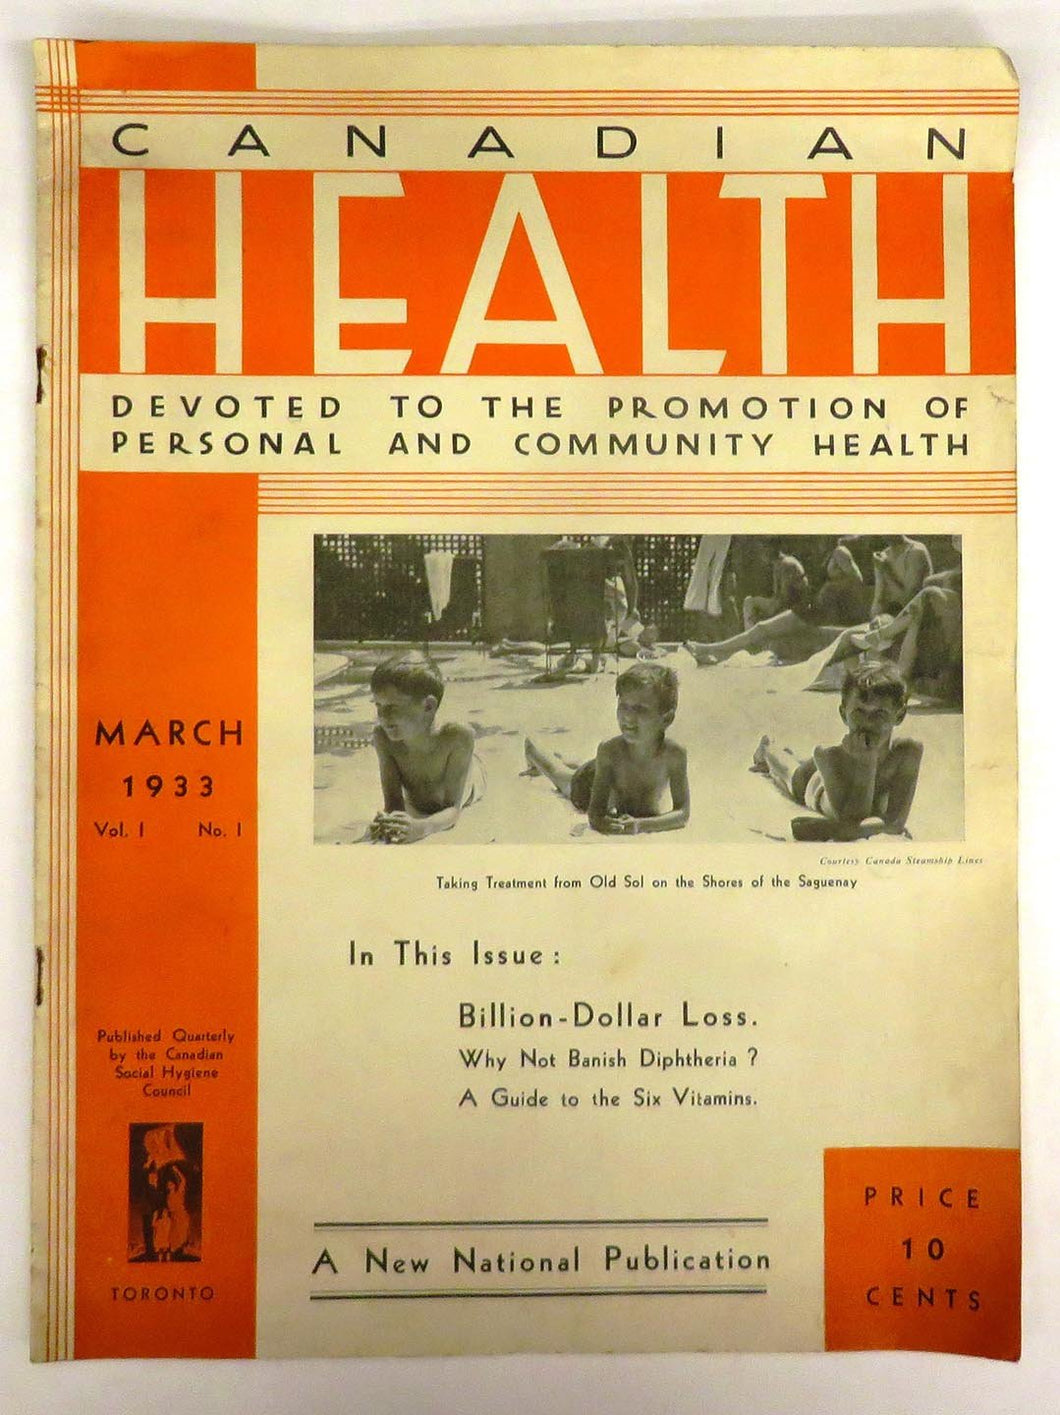 Canadian Health: Devoted to the promotion of personal and community health, March 1933